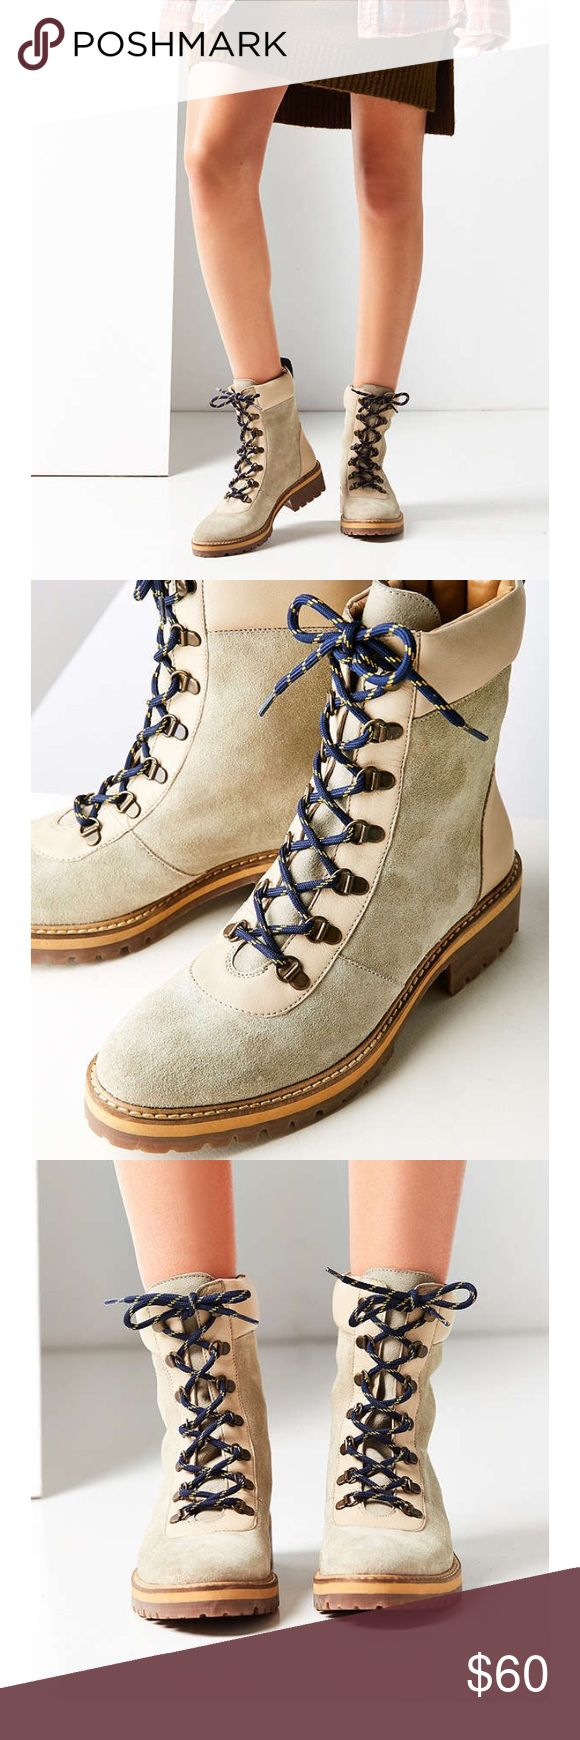 FLASHSALE🌈urban outfitters boots! NEW Sz 7 Brand new urban outfitters boots! These could be worn for hiking or for fashion! Nice clean color with leather details and vintage style laces! Super cute and have never been worn! Urban Outfitters Shoes Lace Up Boots